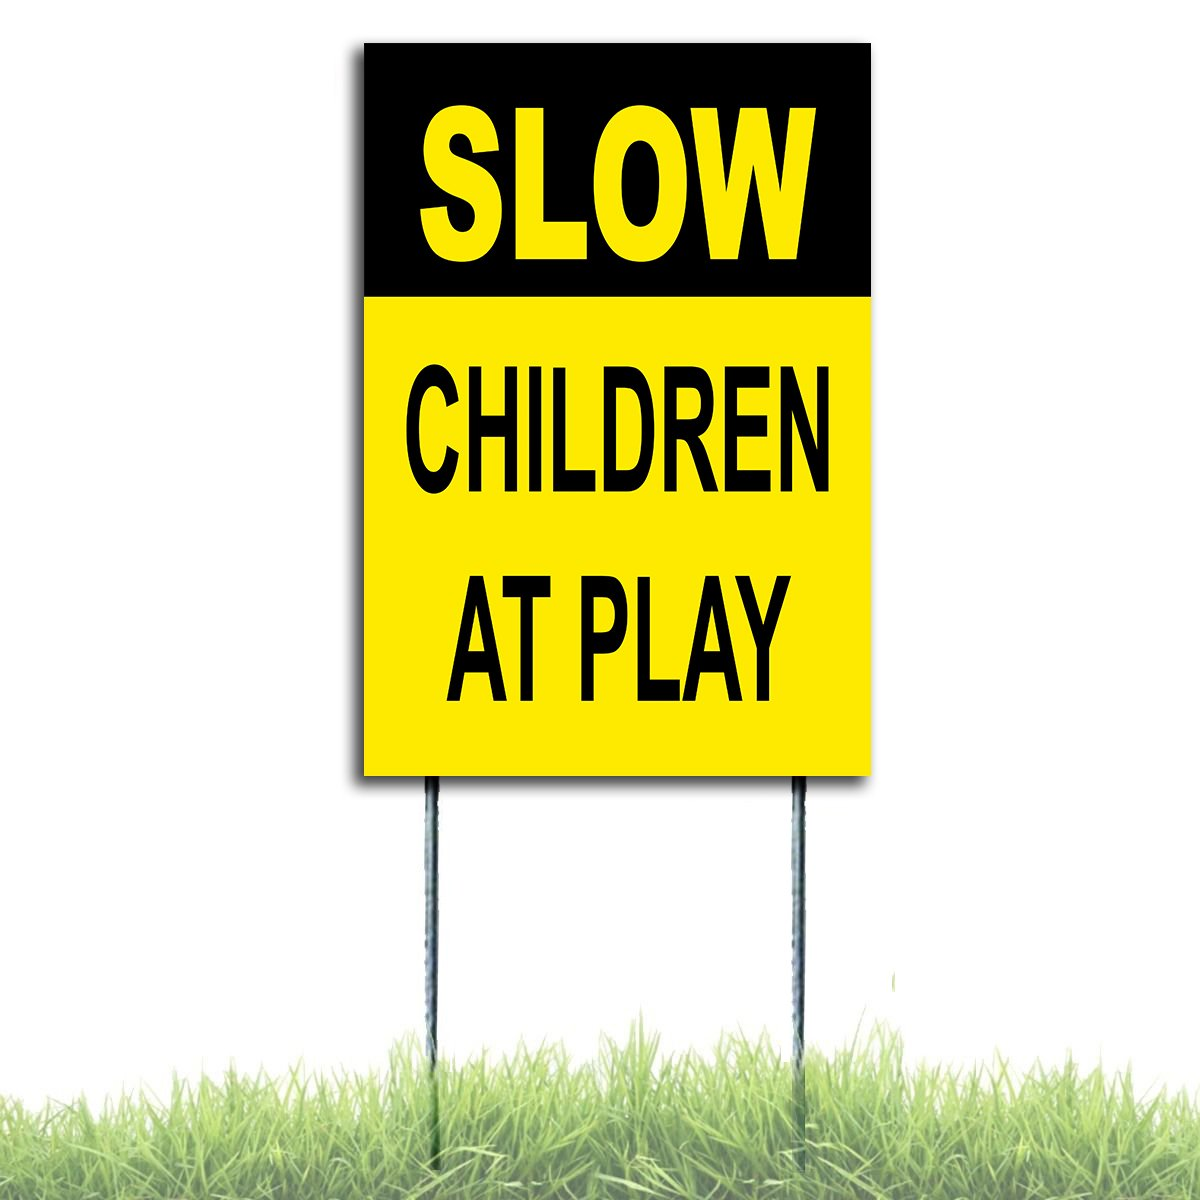 Children At Play Yard Safety Traffic Sign Coroplast Plastic 8x12 Stake Free Stake Slow